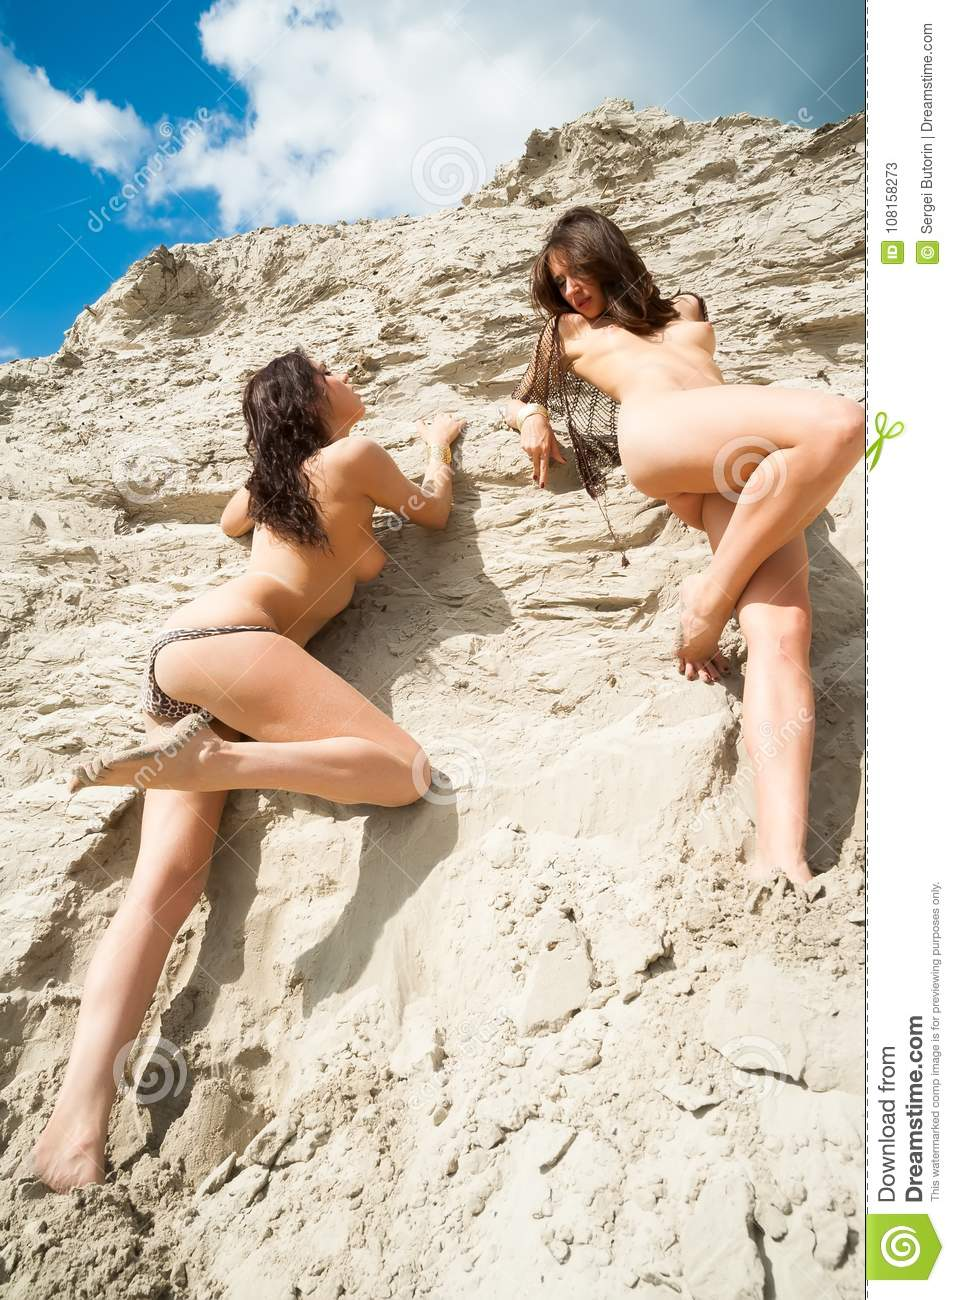 Naked girls at rest Attractive Naked Girls Relax On Sand Stock Image Image Of Female Model 108158273